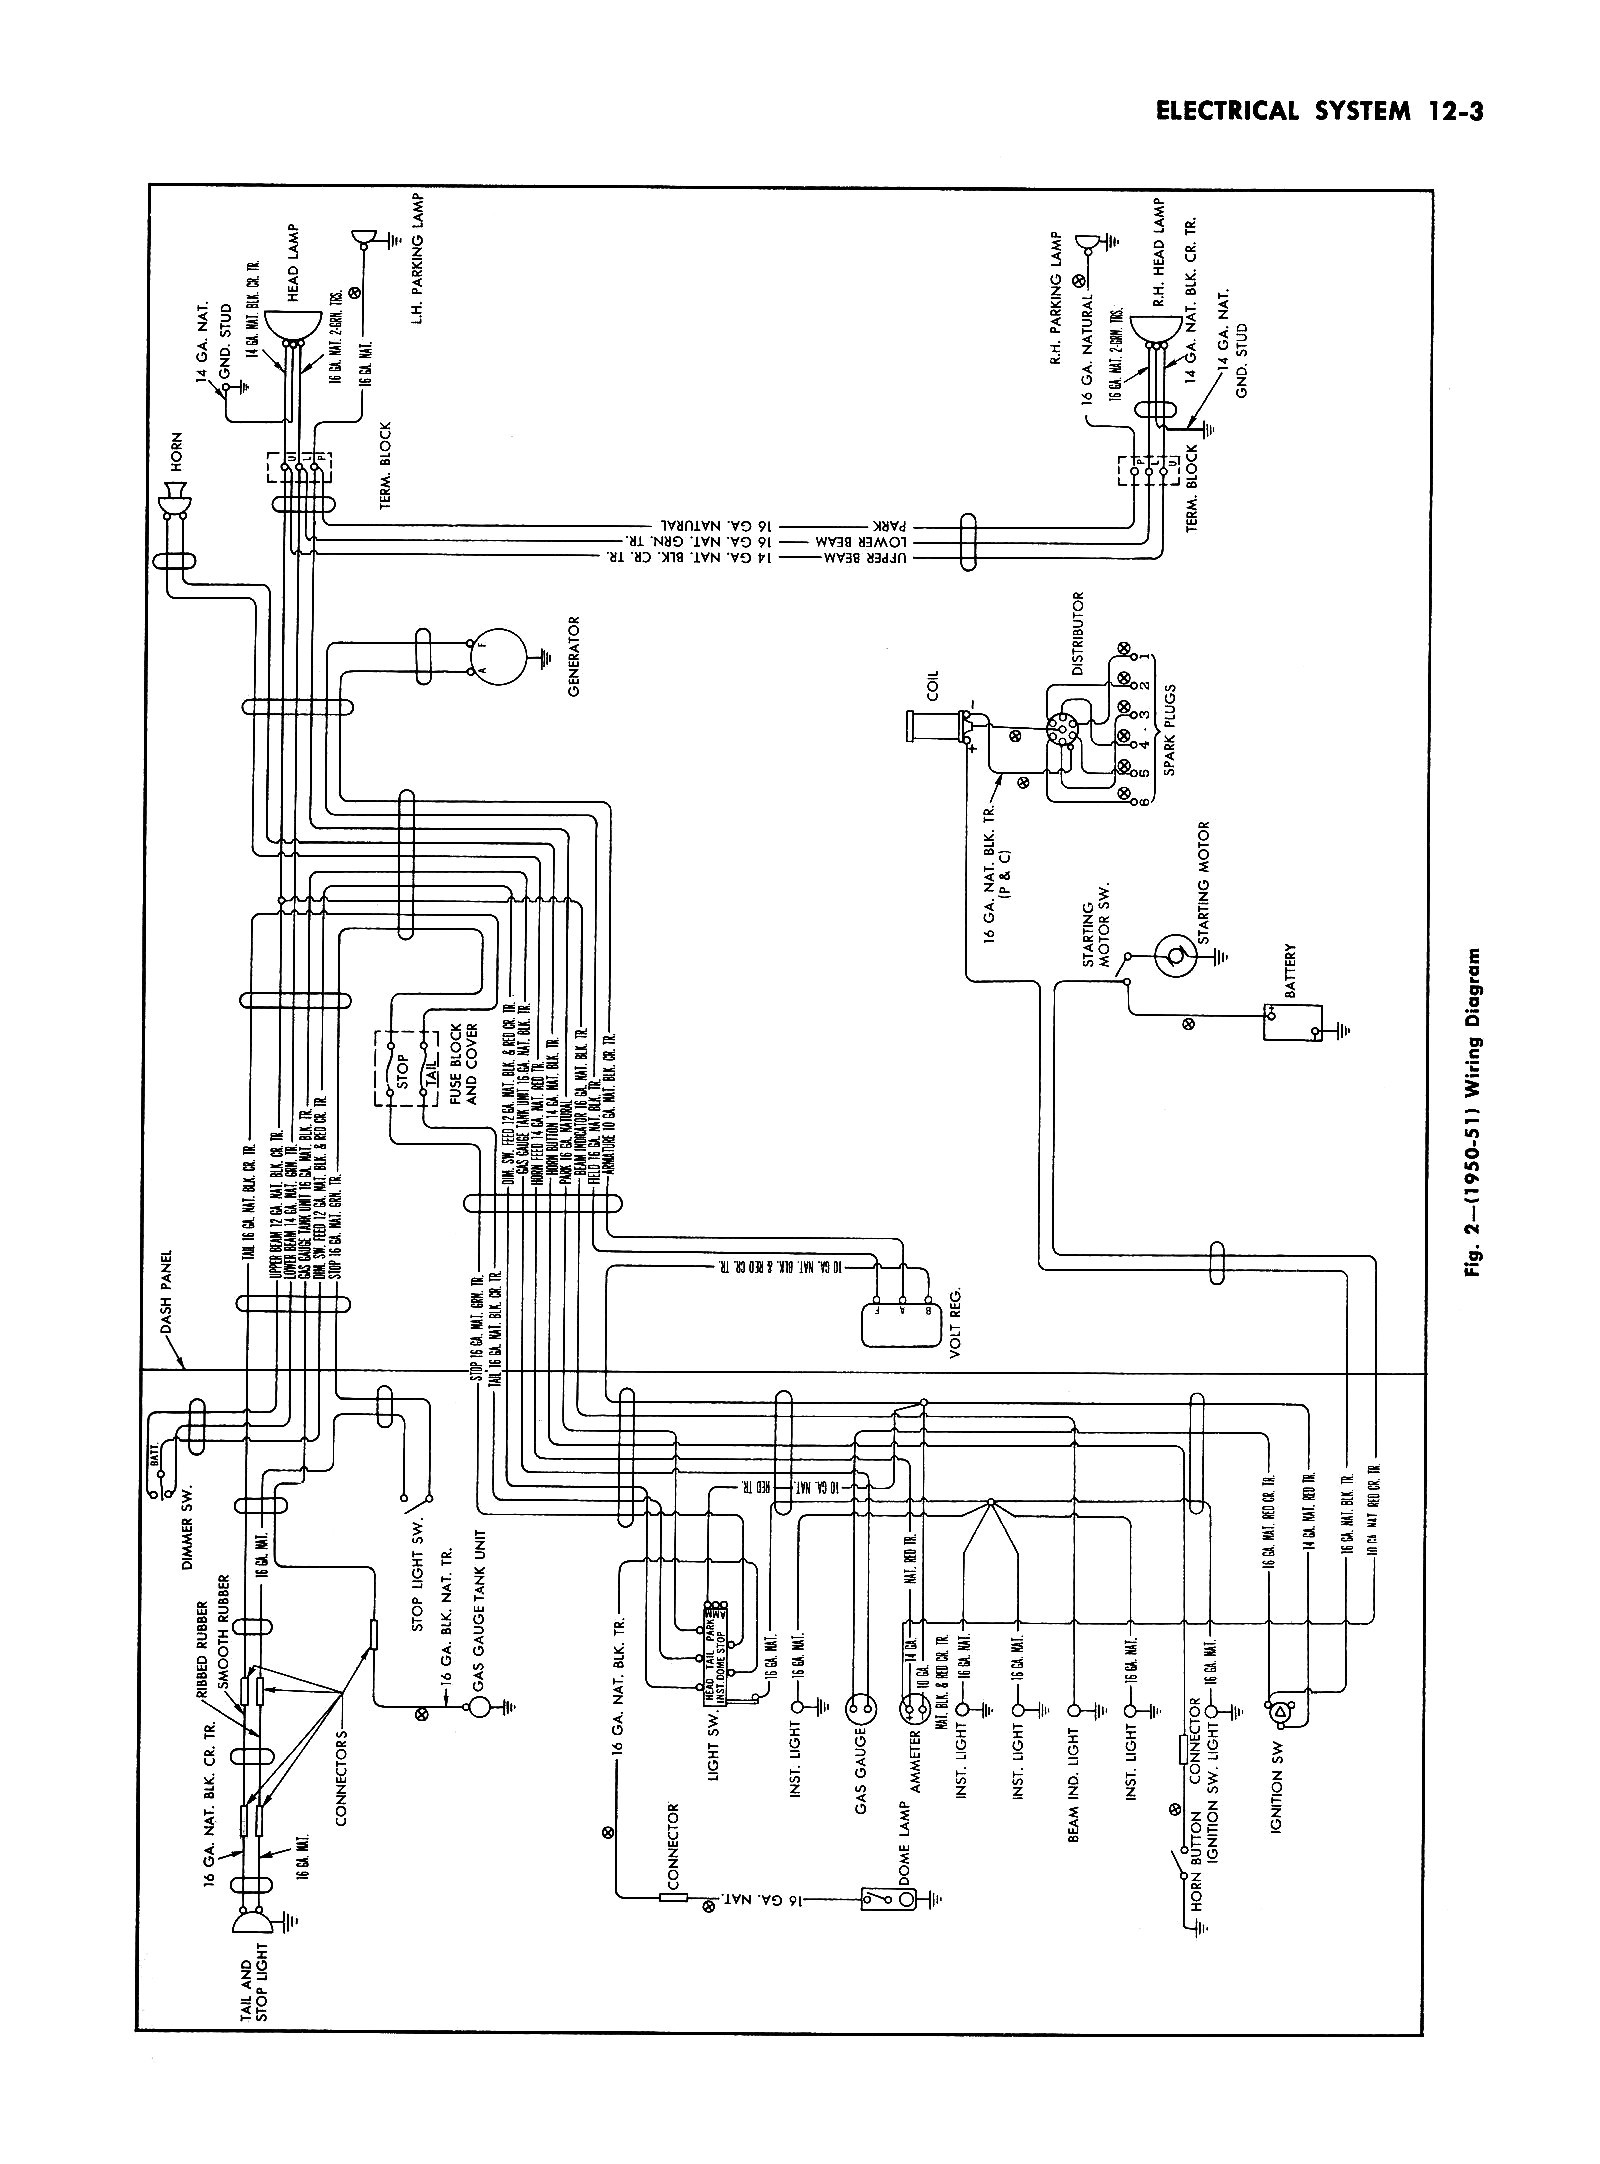 1951 chevy truck wiring diagram 1957 chevy heater wiring